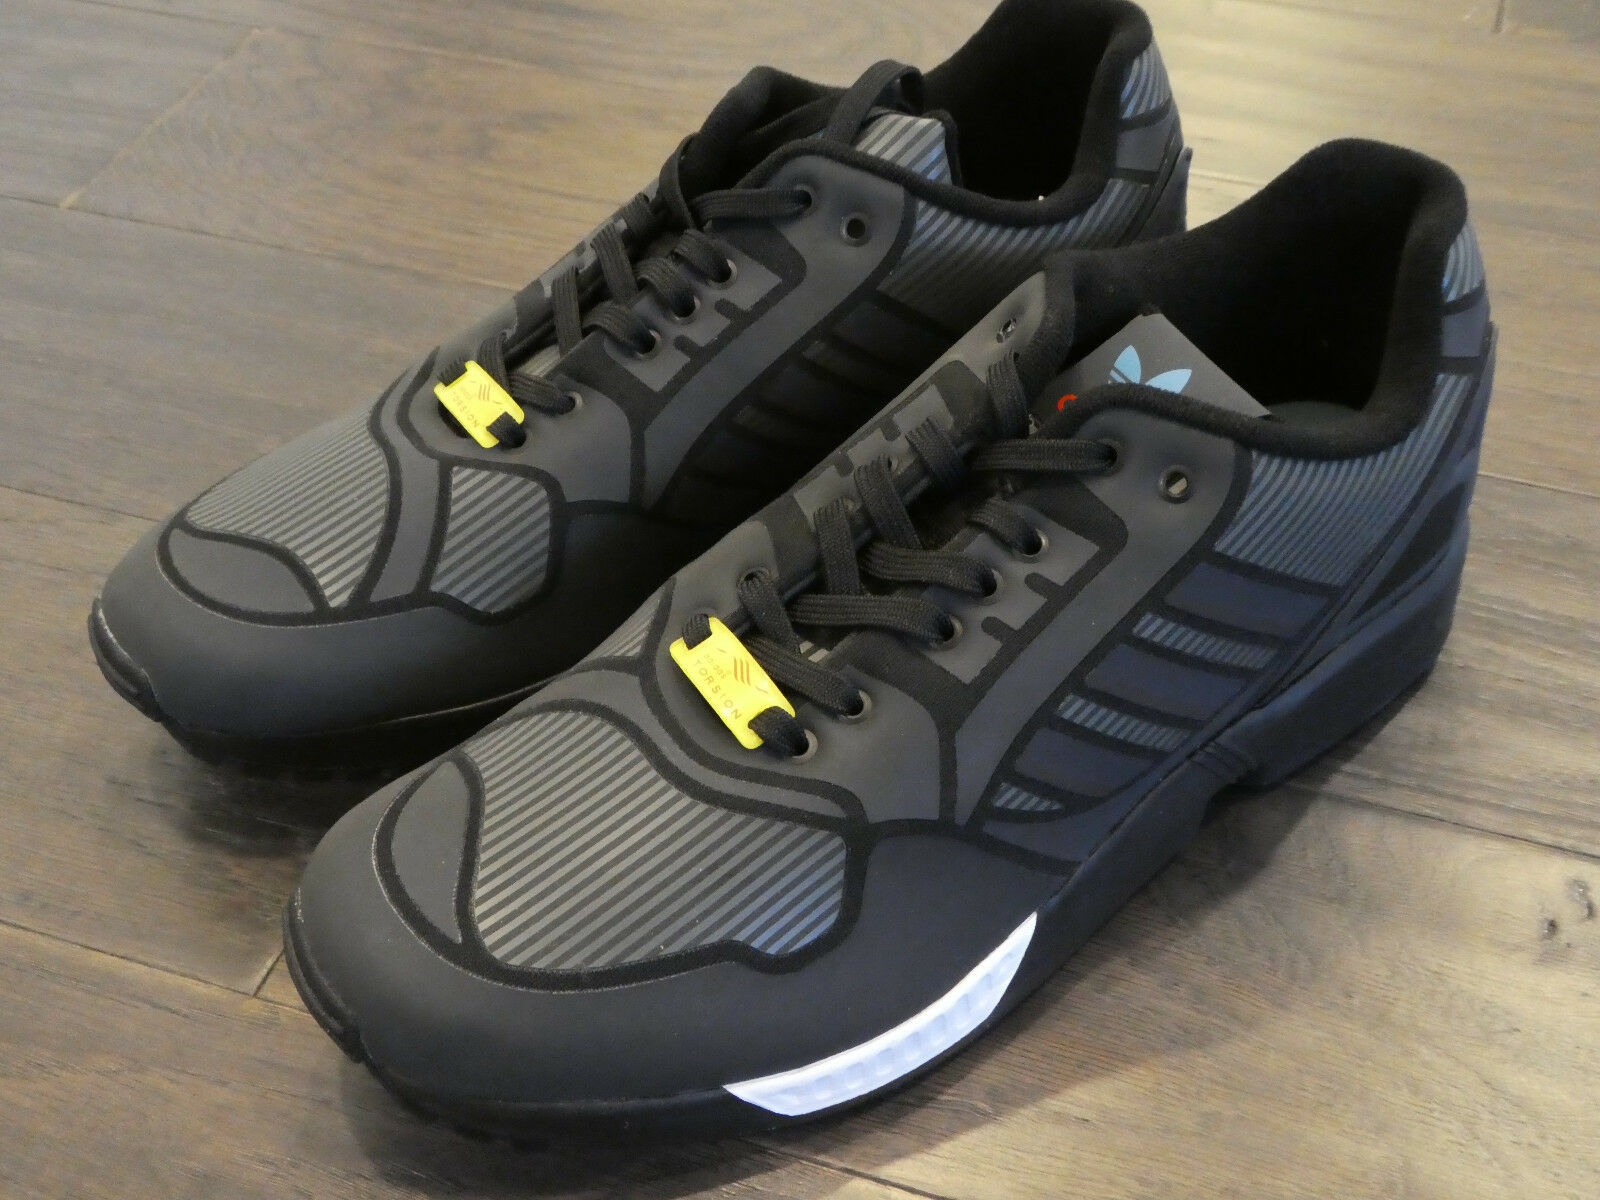 finest selection 08029 c811d Adidas ZX Flux shoes mens new sneakers trainers 3M B54177 black